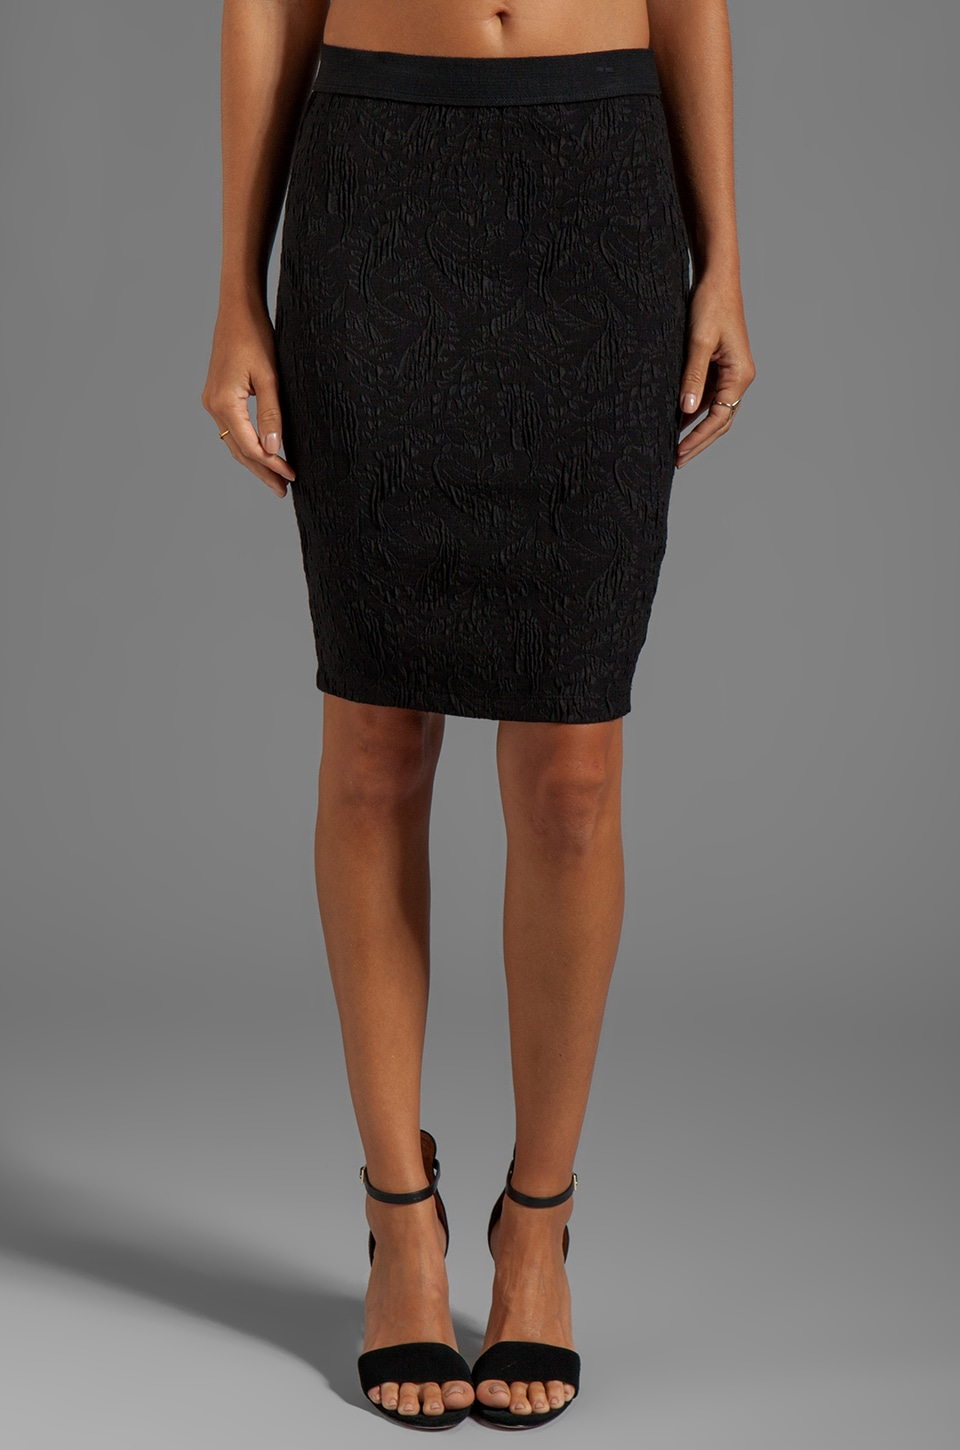 Bailey 44 Syntax Pencil Skirt in Black